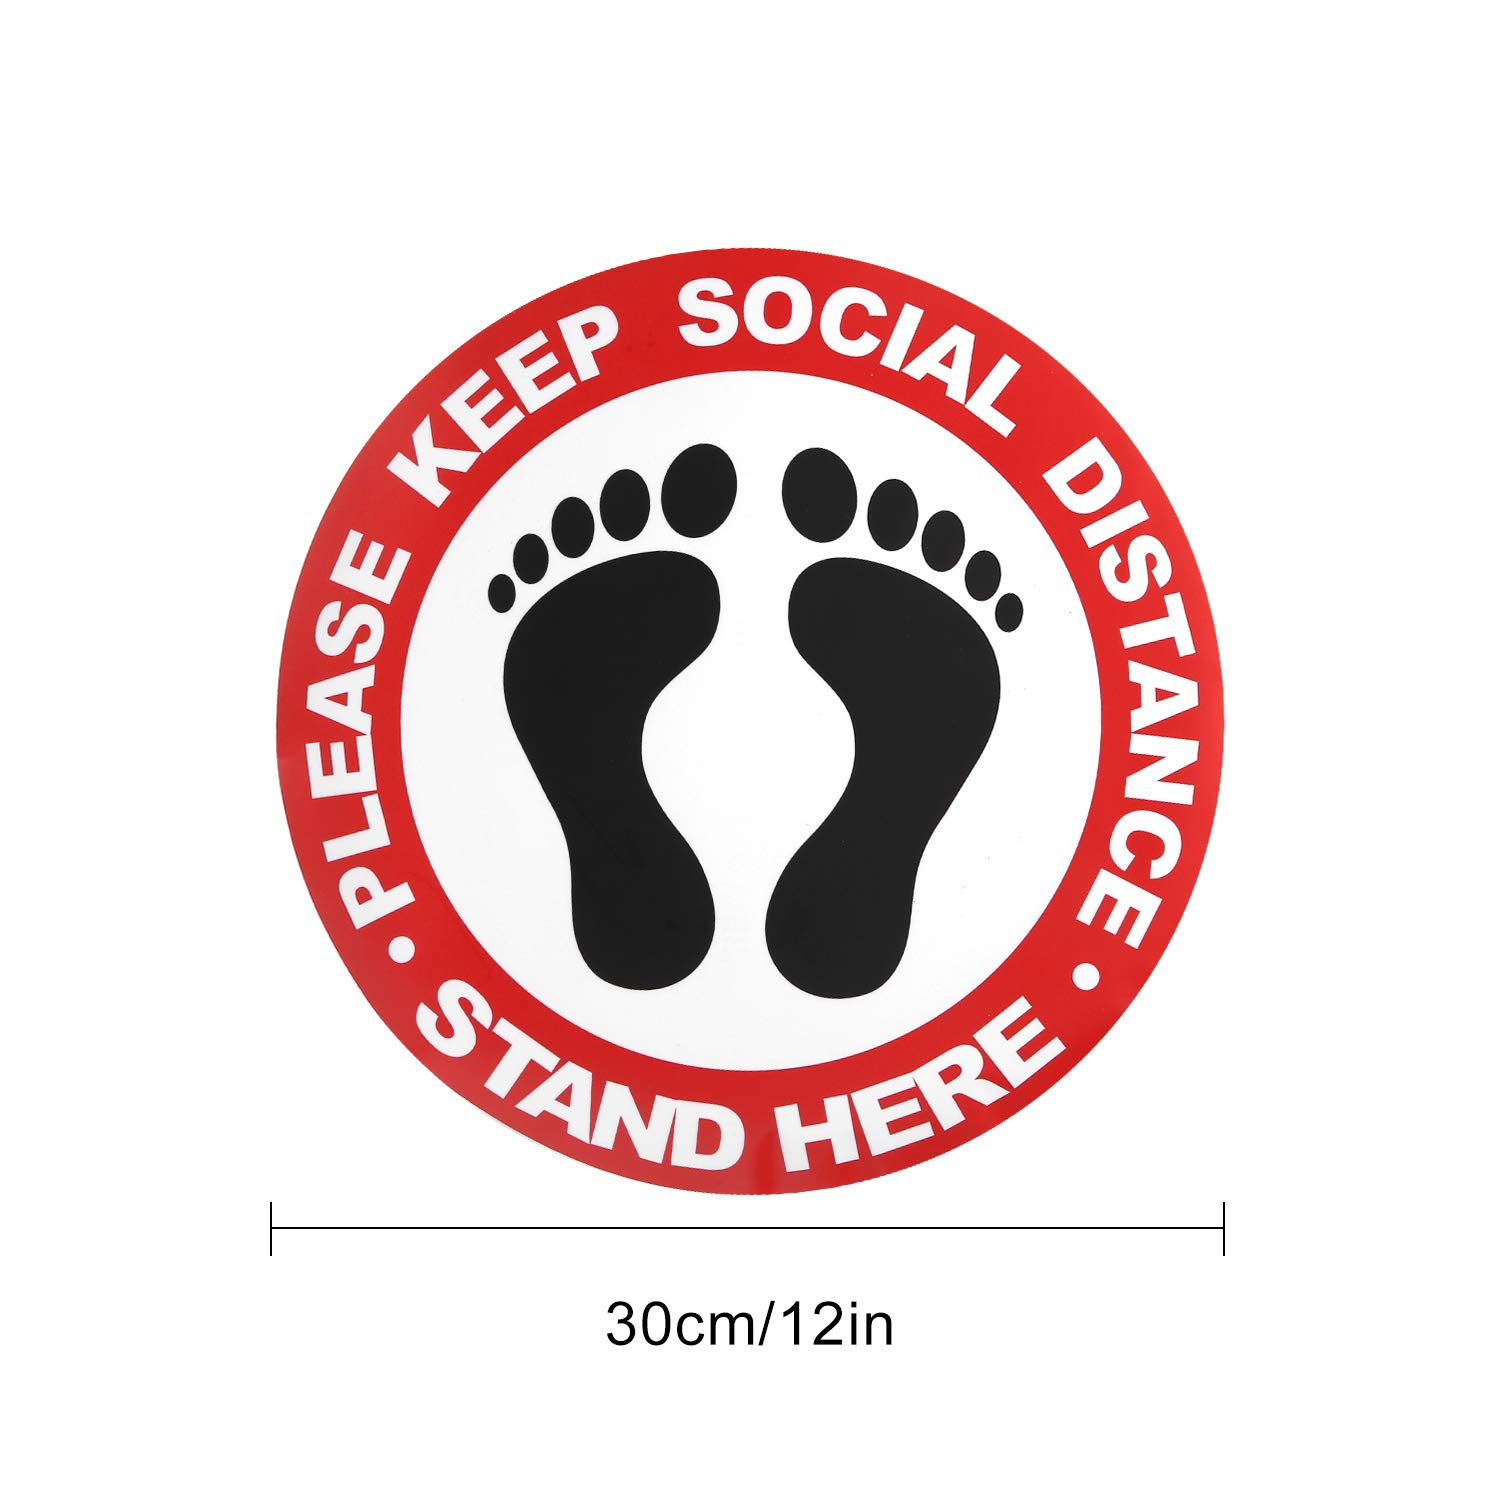 5 PCS Please Practice Social Distancing Floor Sign 12 with Anti Slip Coating red Made to Walk on. Keep 6ft in Between Distance Marker Floor Decal